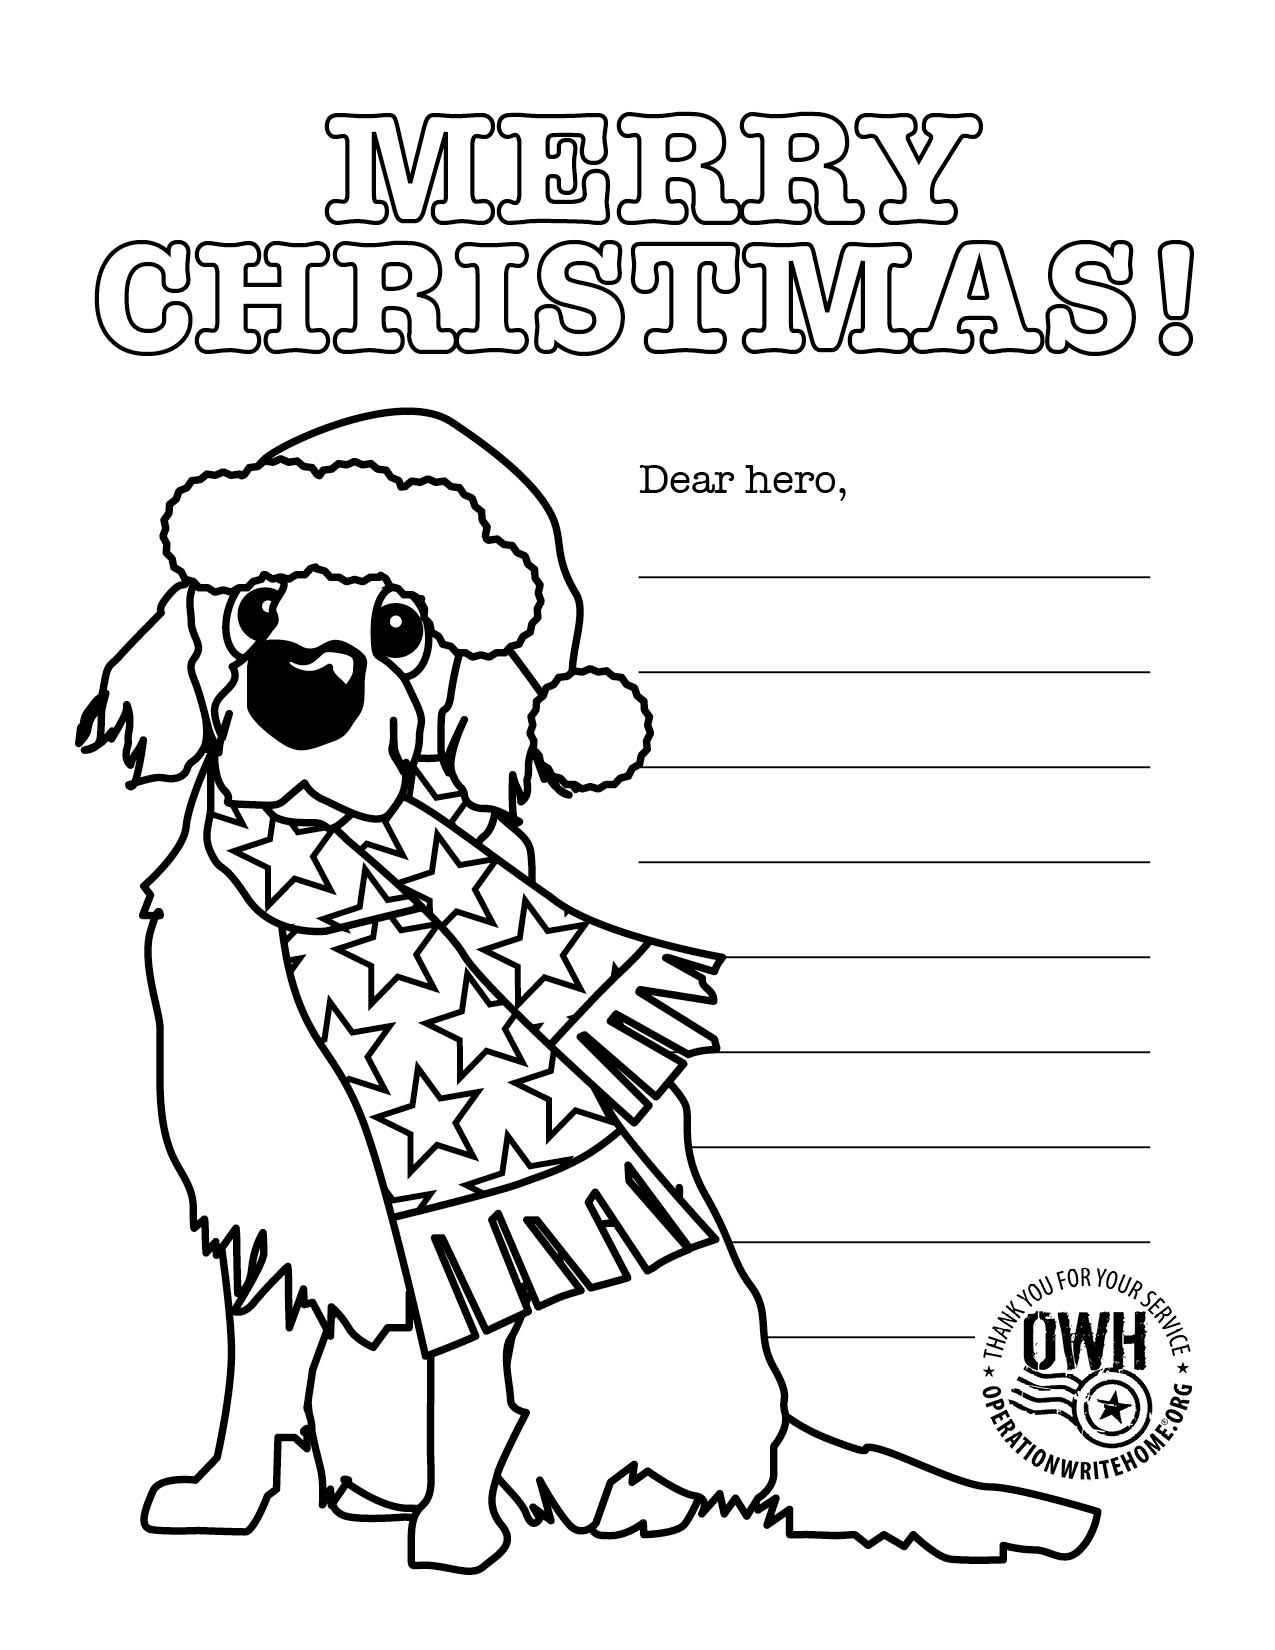 Coloring pages for xmas stockings - Pictures Blank Card Christmas Coloring For Kids Christmas Coloring Pages Kidsdrawing Free Coloring Pages Online